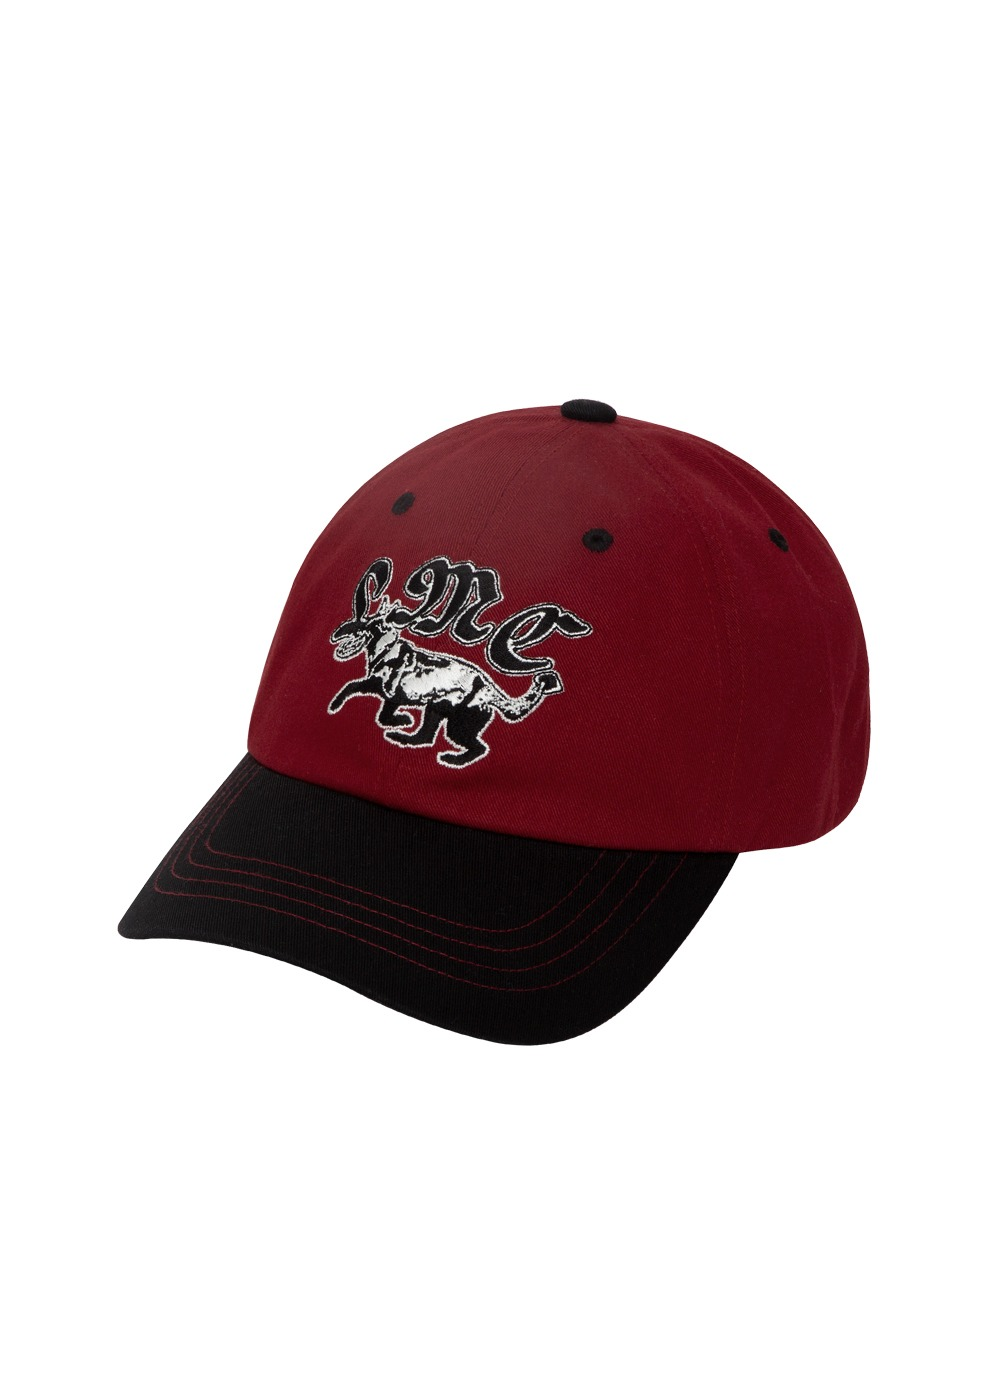 LMC TWO-TONE DOG 6 PANEL CAP burgundy